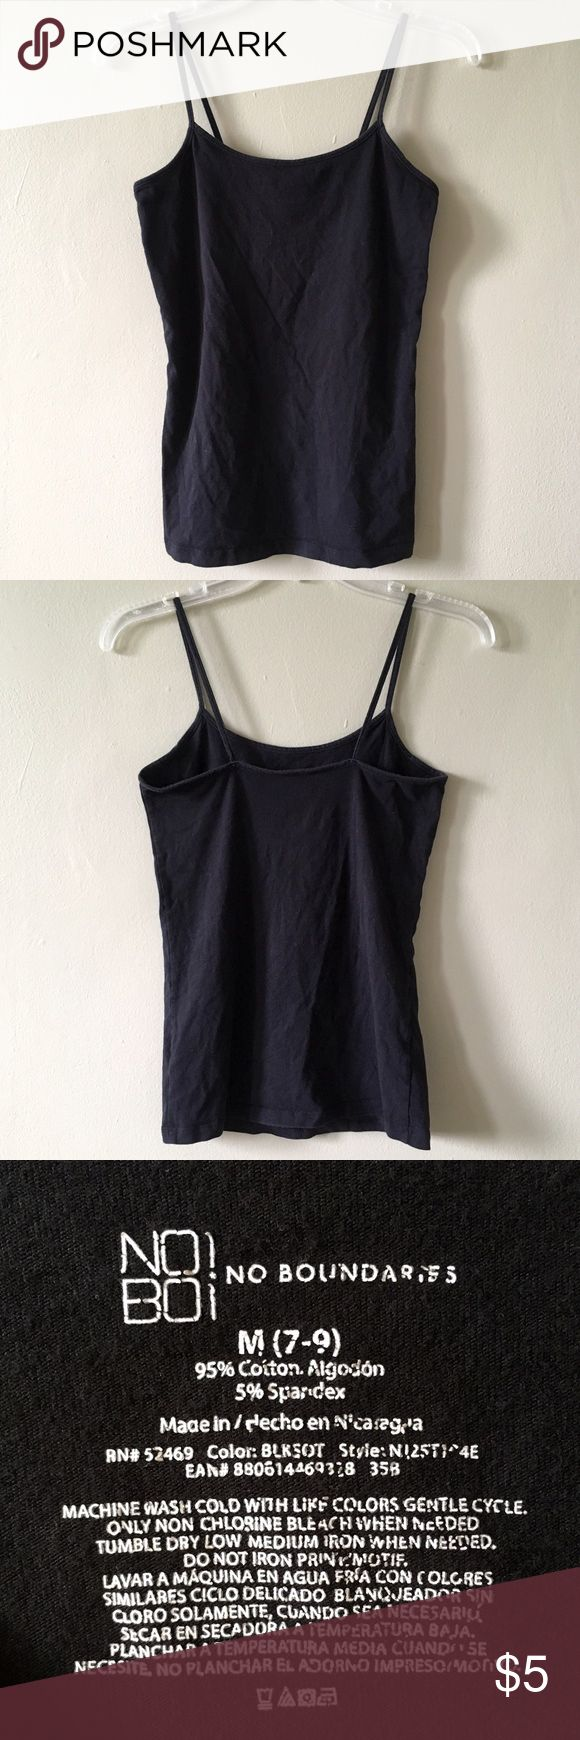 Brown Cotton Spandex Comfortable Camisole Tank Top Black Cotton Spandex Stretch Comfy Camisole Tank Top. Spaghetti straps. Size Medium (7-9). Used, good condition. No Boundaries Tops Tank Tops